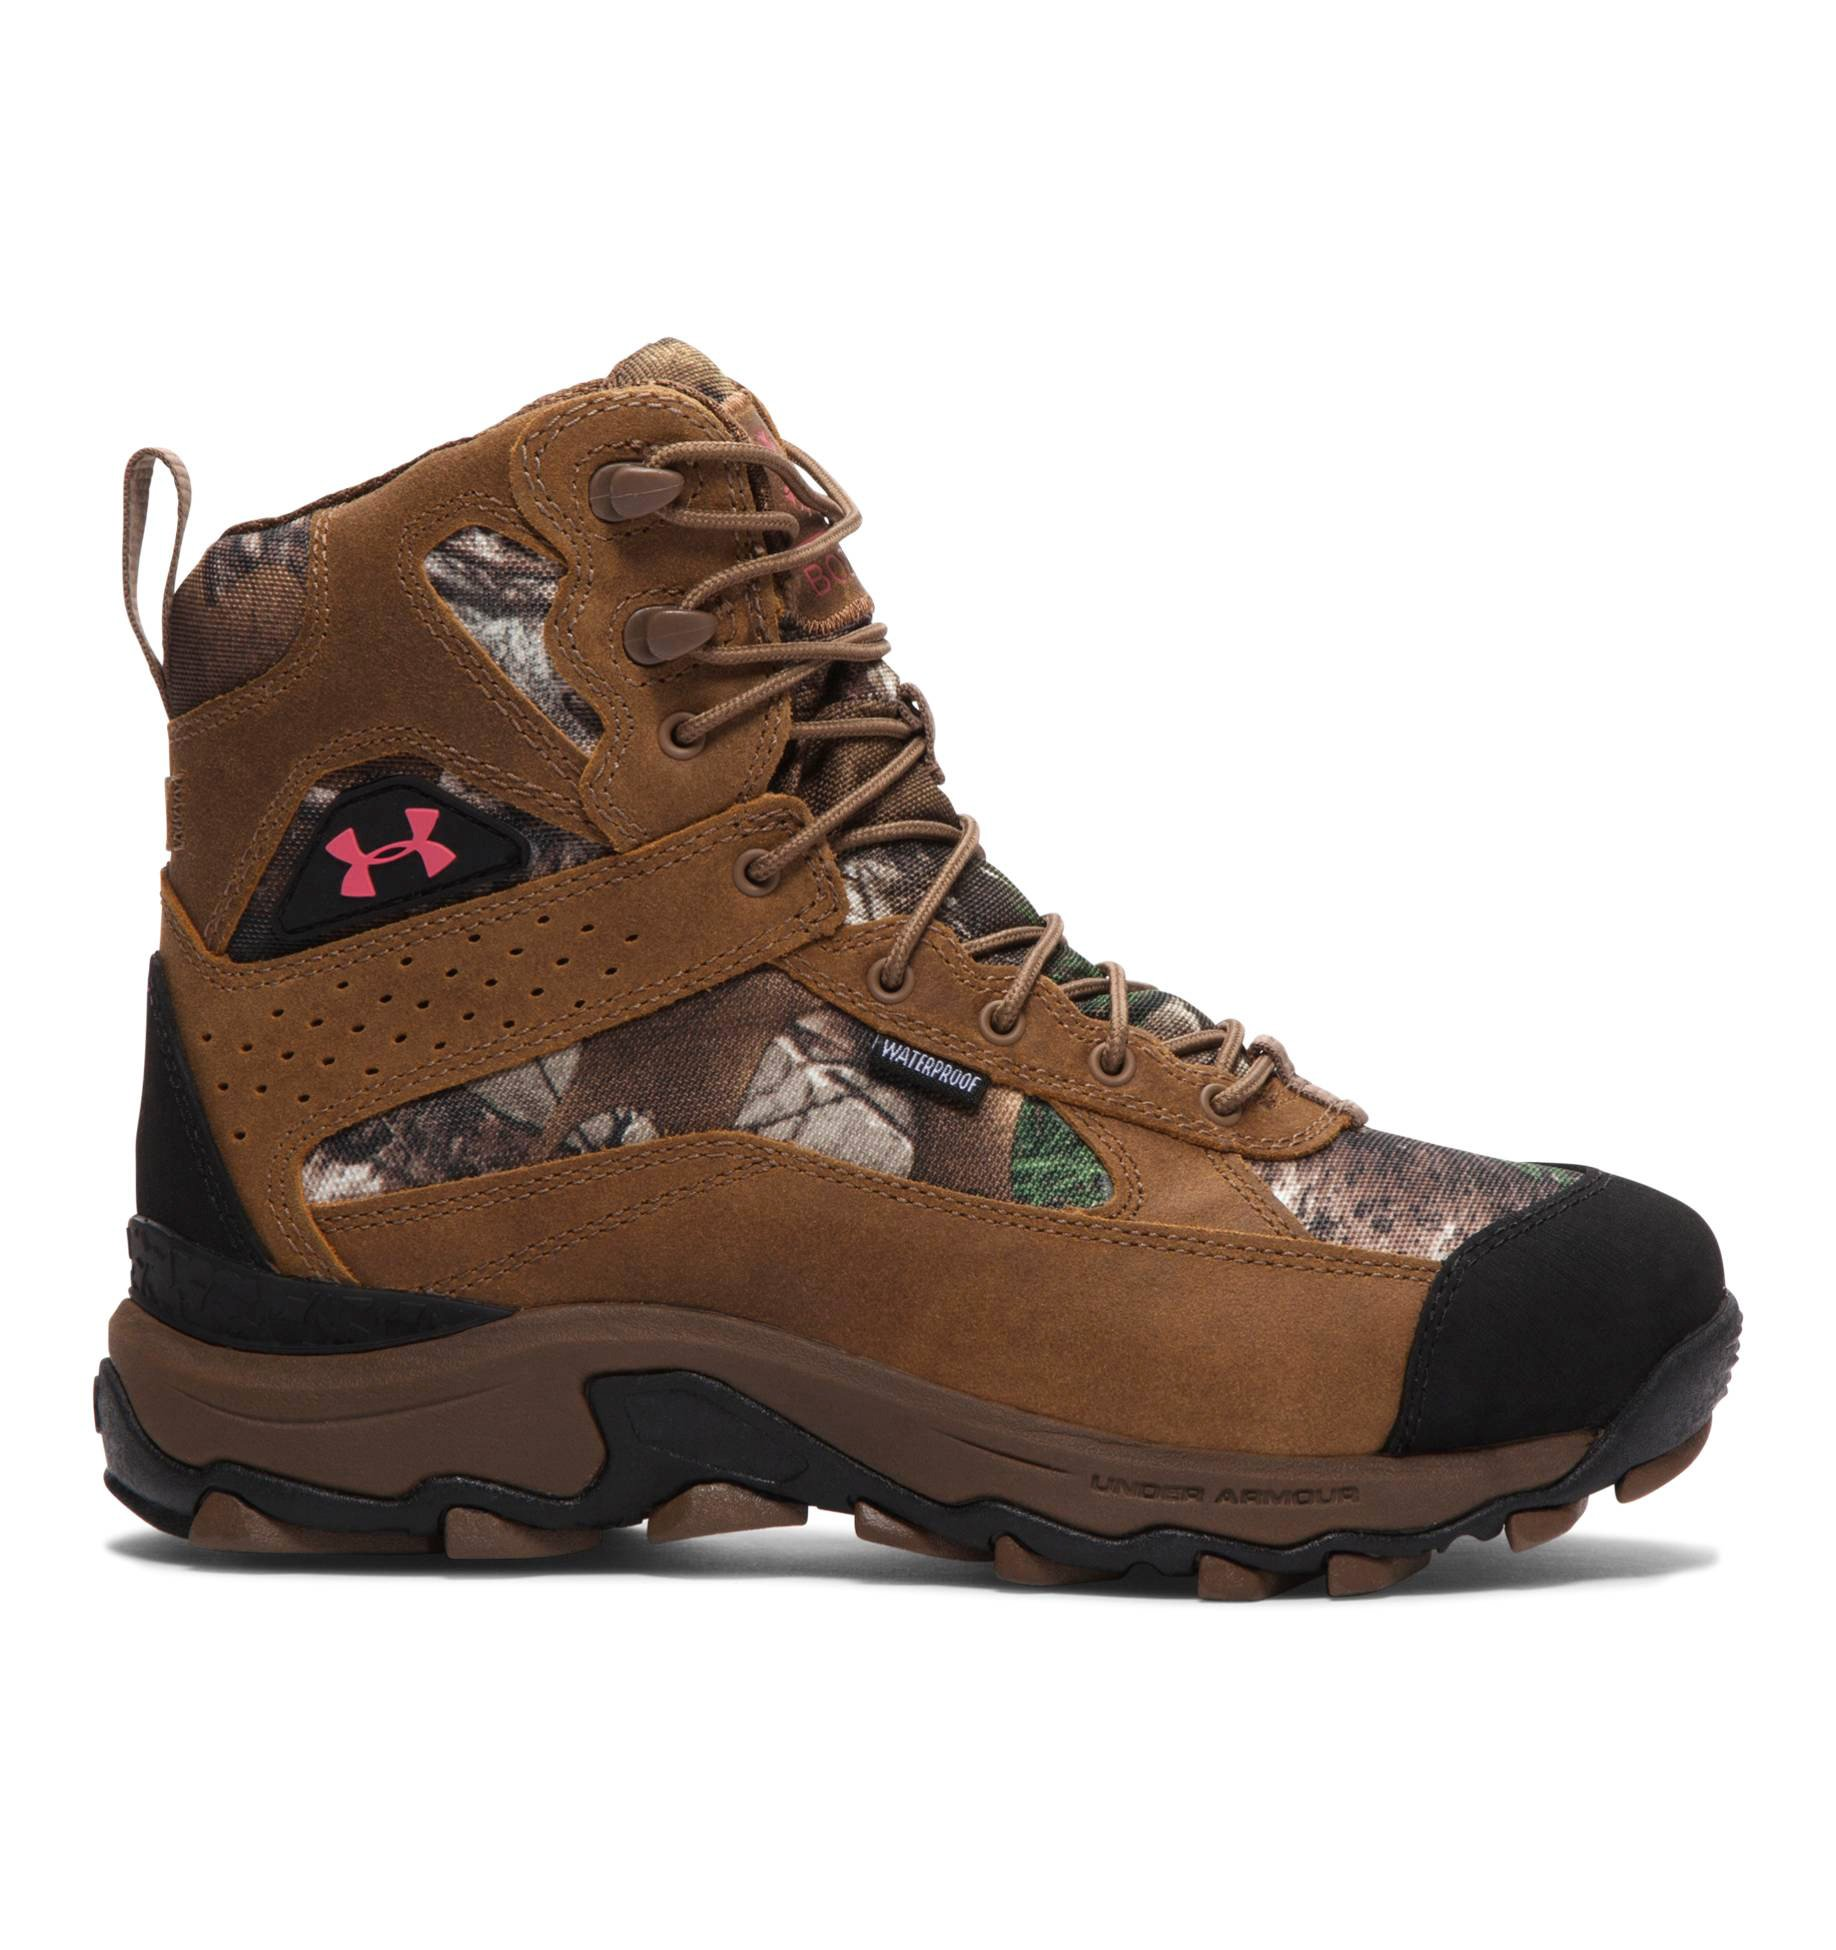 Under Armour UA Speed Freek Bozeman 600 Boot - Women's Realtree Ap-Xtra / Uniform / Perfection 8.5 by Under Armour